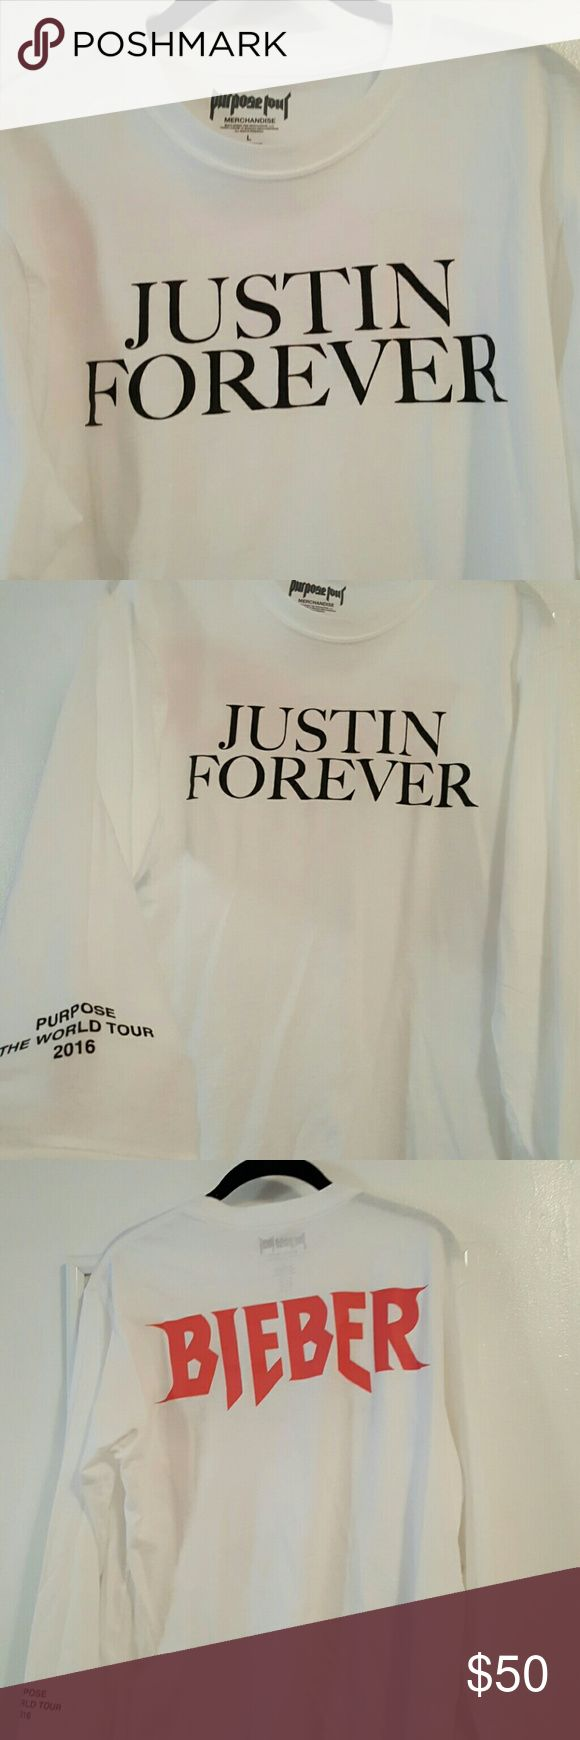 556 best justin bieber things images on pinterest justin bieber justin bieber purpose tour long sleeve tee white justin bieber purpose tour long sleeve tee with